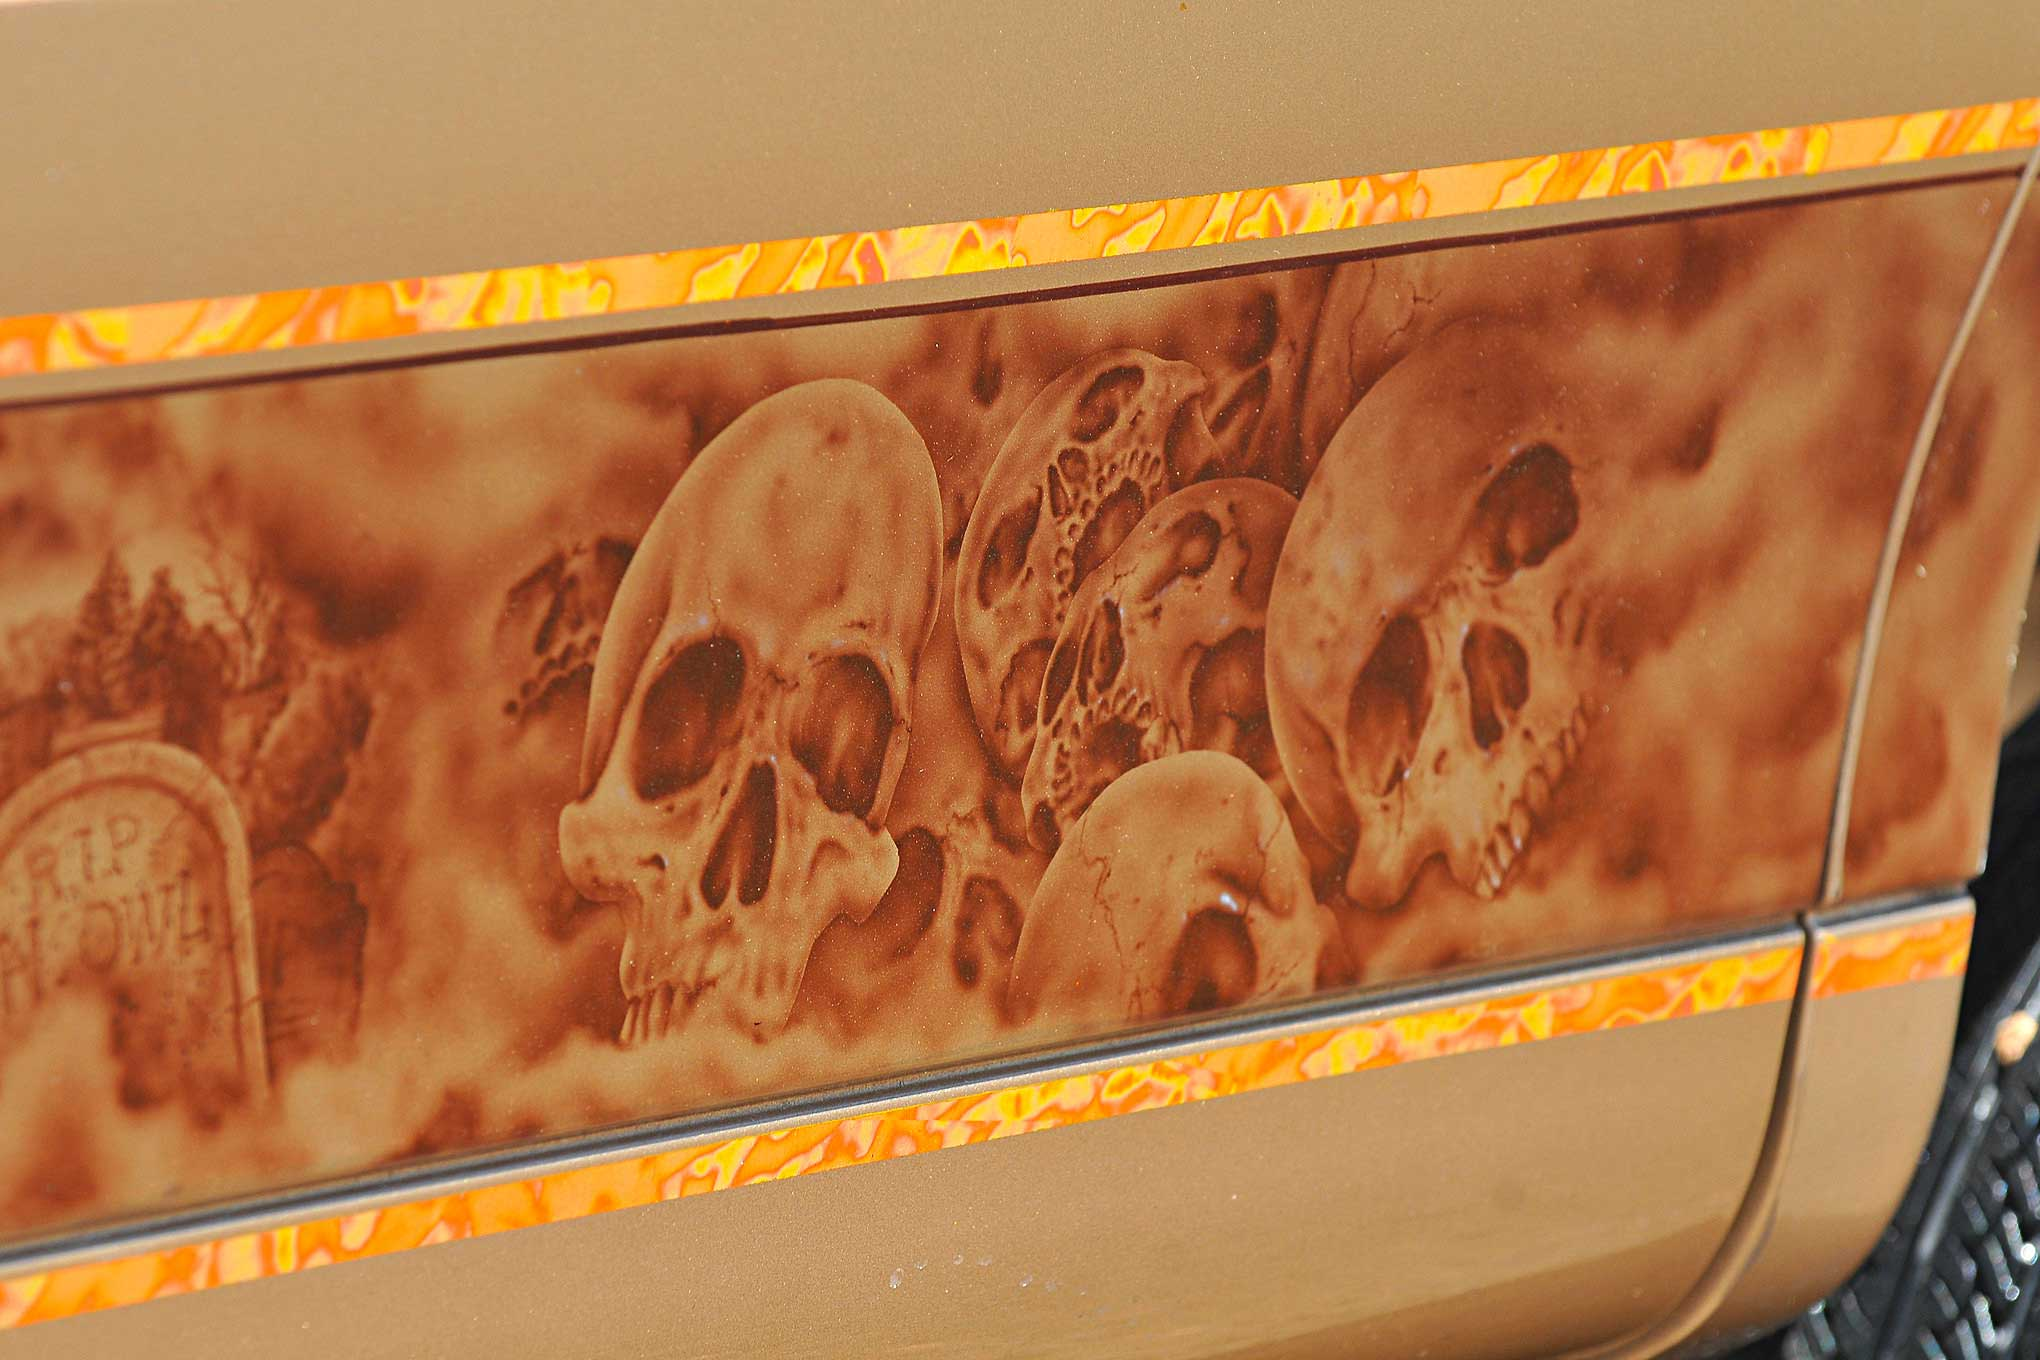 1998 lincoln towncar airbrushed skull mural lowrider for Airbrushed mural